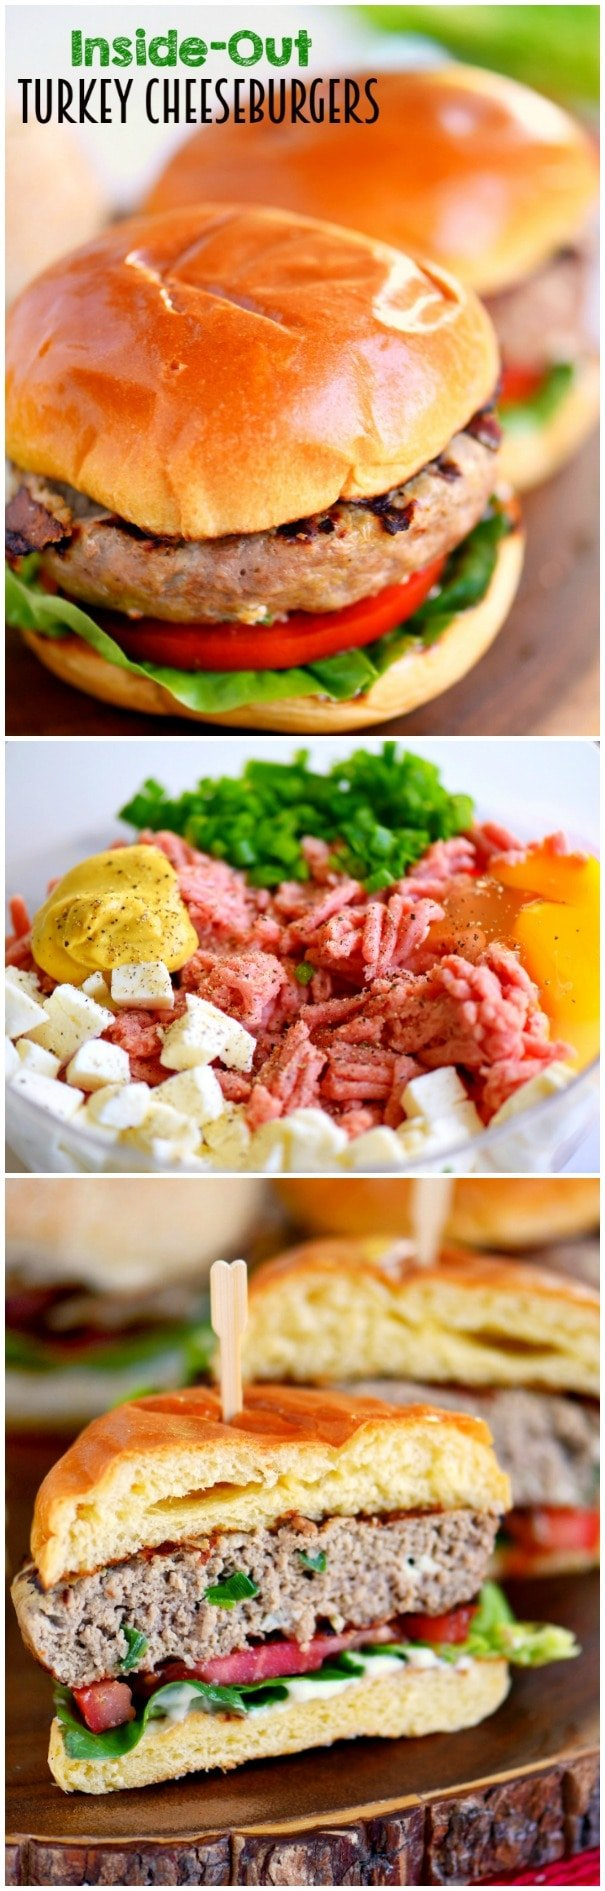 Fire up that grill and throw on these Inside Out Turkey Cheeseburgers! Loaded with flavor and filled with fresh mozzarella cheese, green onions, and Dijon mustard - these easy burgers are going to light up your 4th of July celebration!